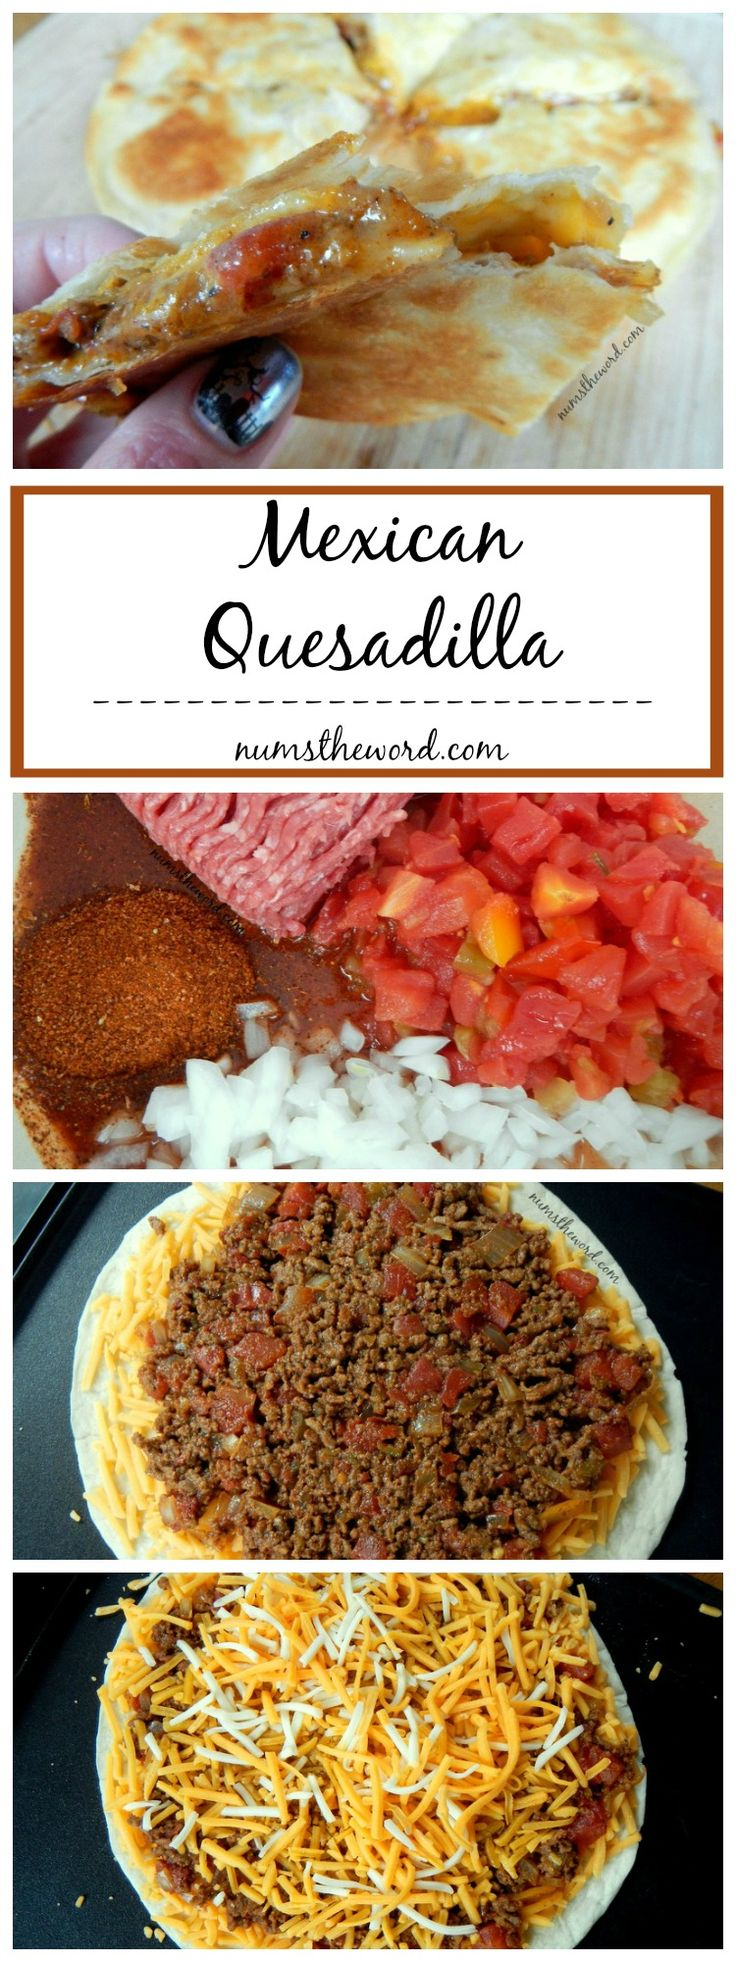 Mexican Quesadilla - A tasty twist on the classic quesadilla, this Mexican Quesadilla is hearty enough for a meal and great for on the go with kids! A quick meal for busy nights full of activities!